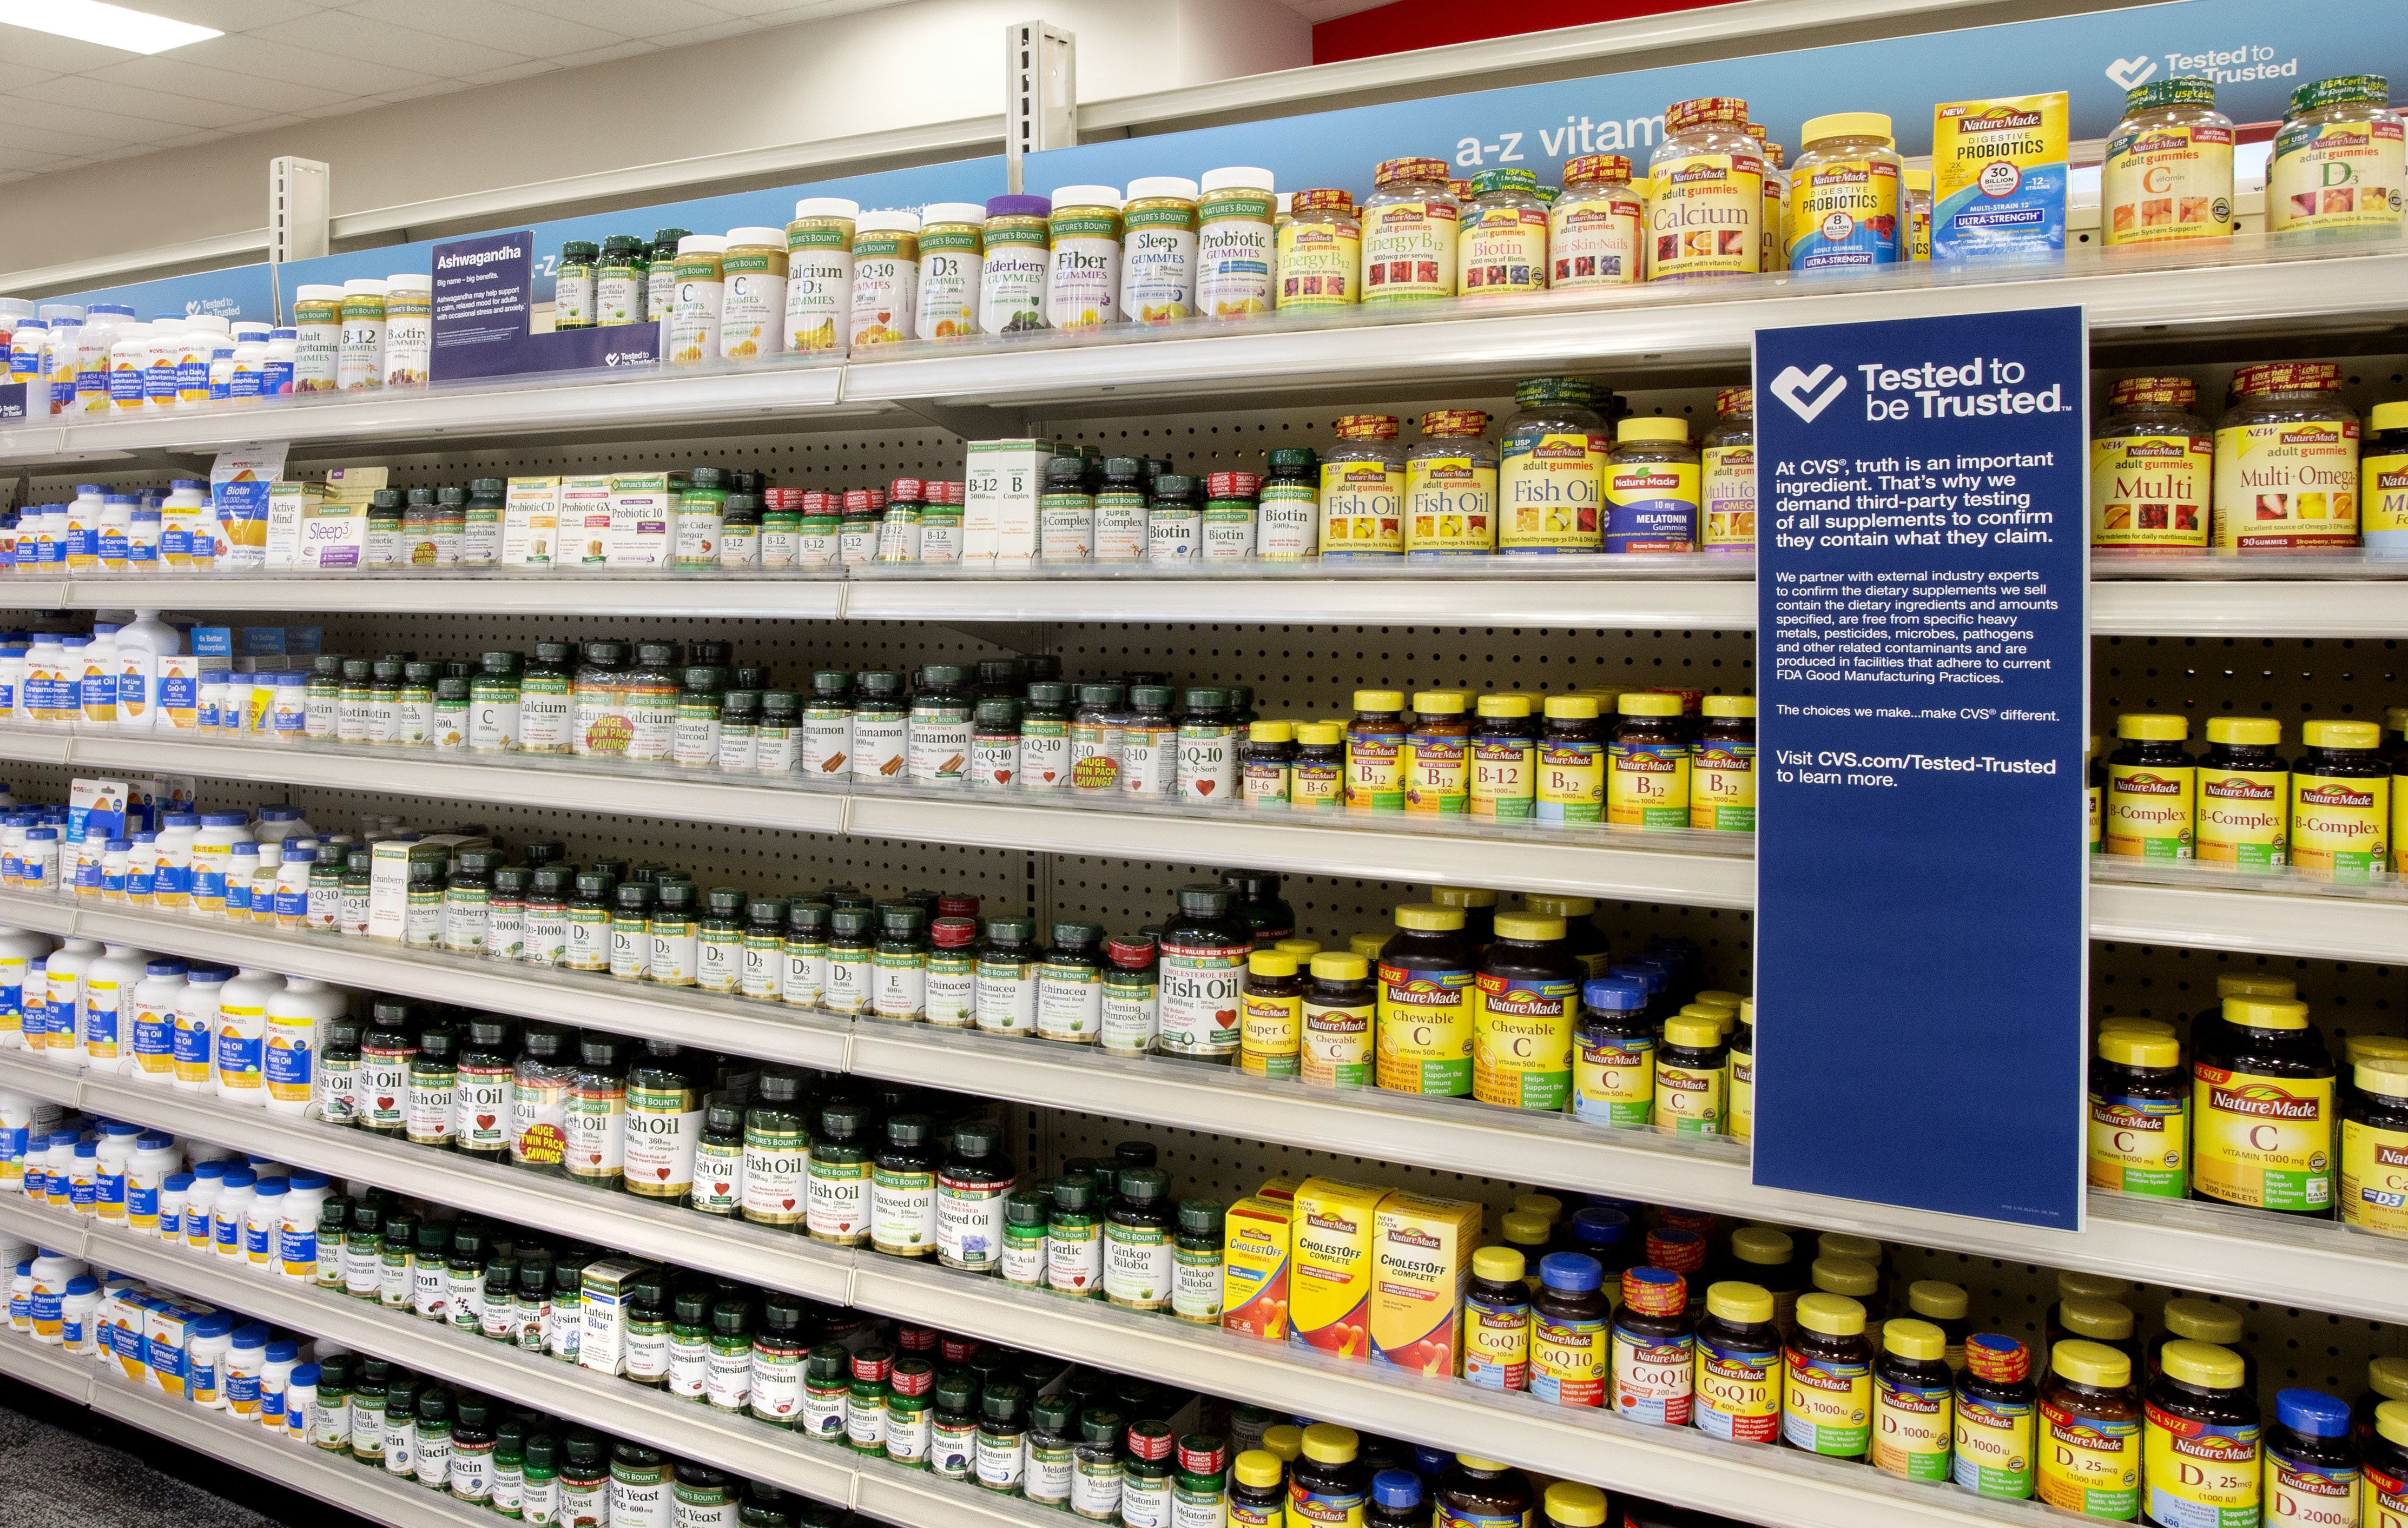 Cvs Will Only Sell Supplements That Have Been Third Party Tested For Safety Vitamin Supplements Digestion Aid All Vitamins